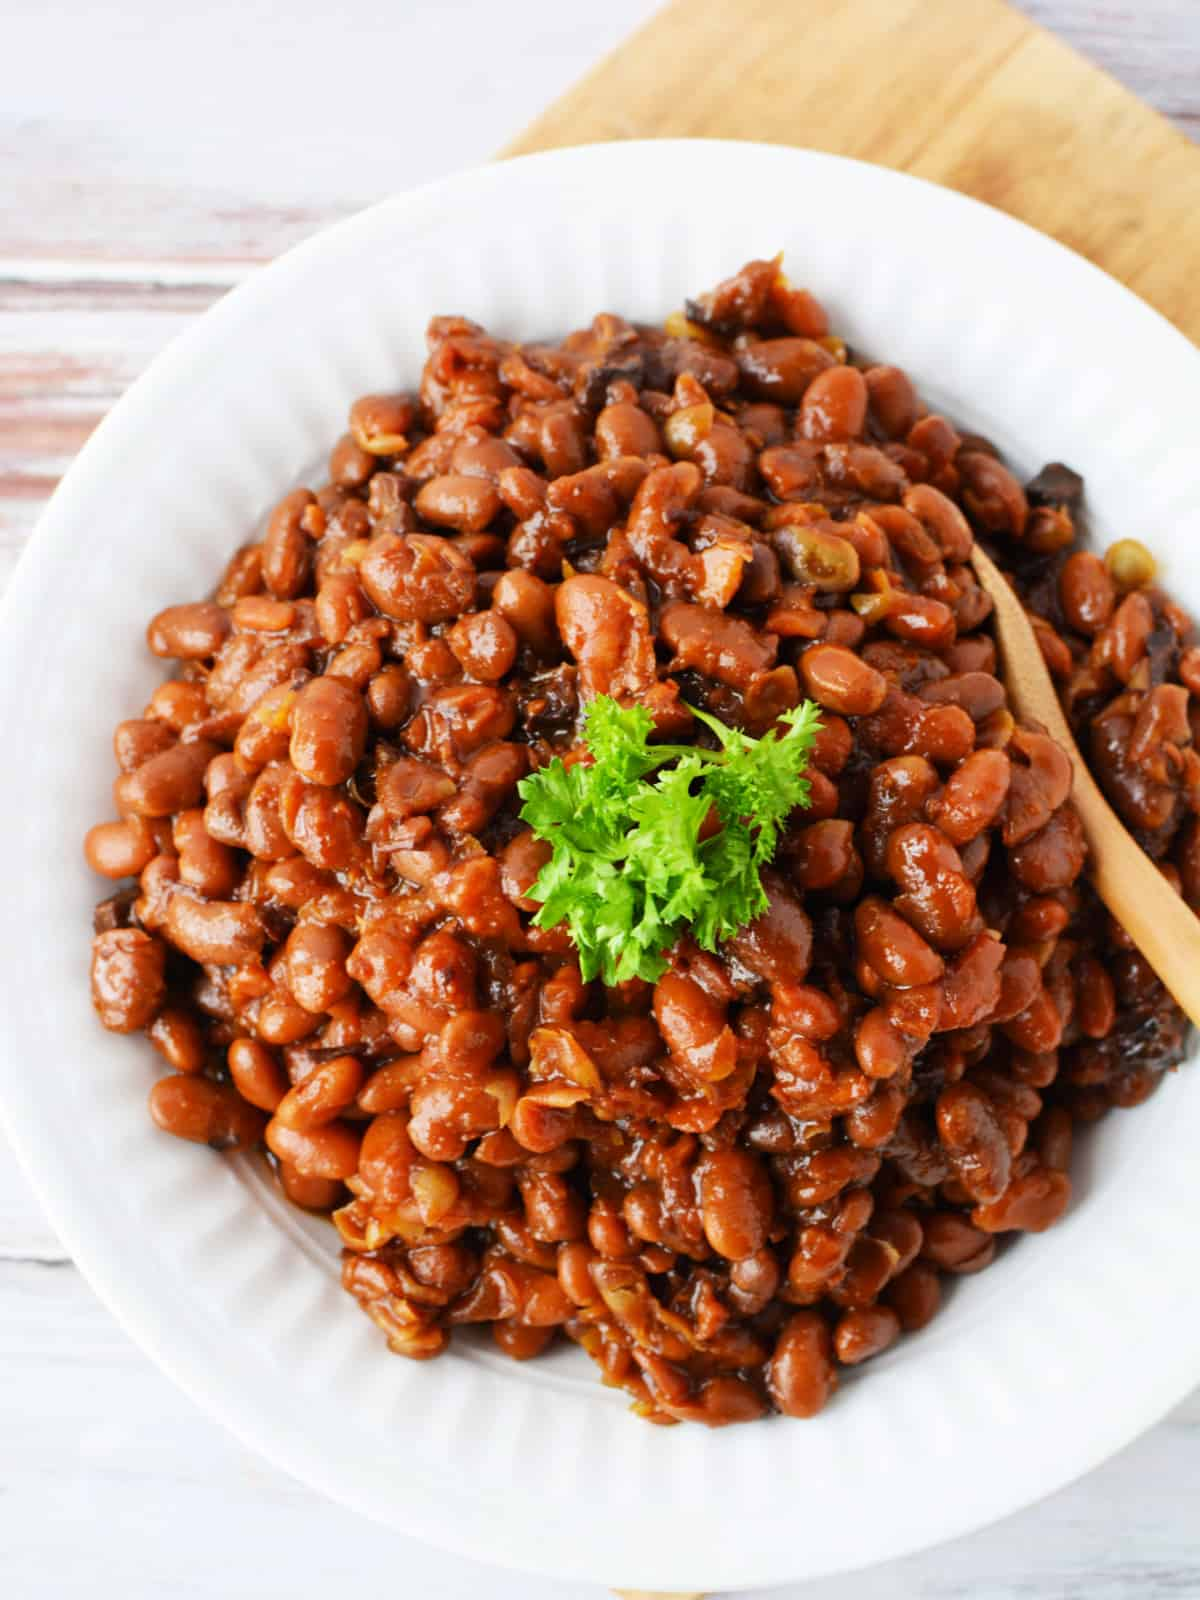 homemade baked beans on a serving dish